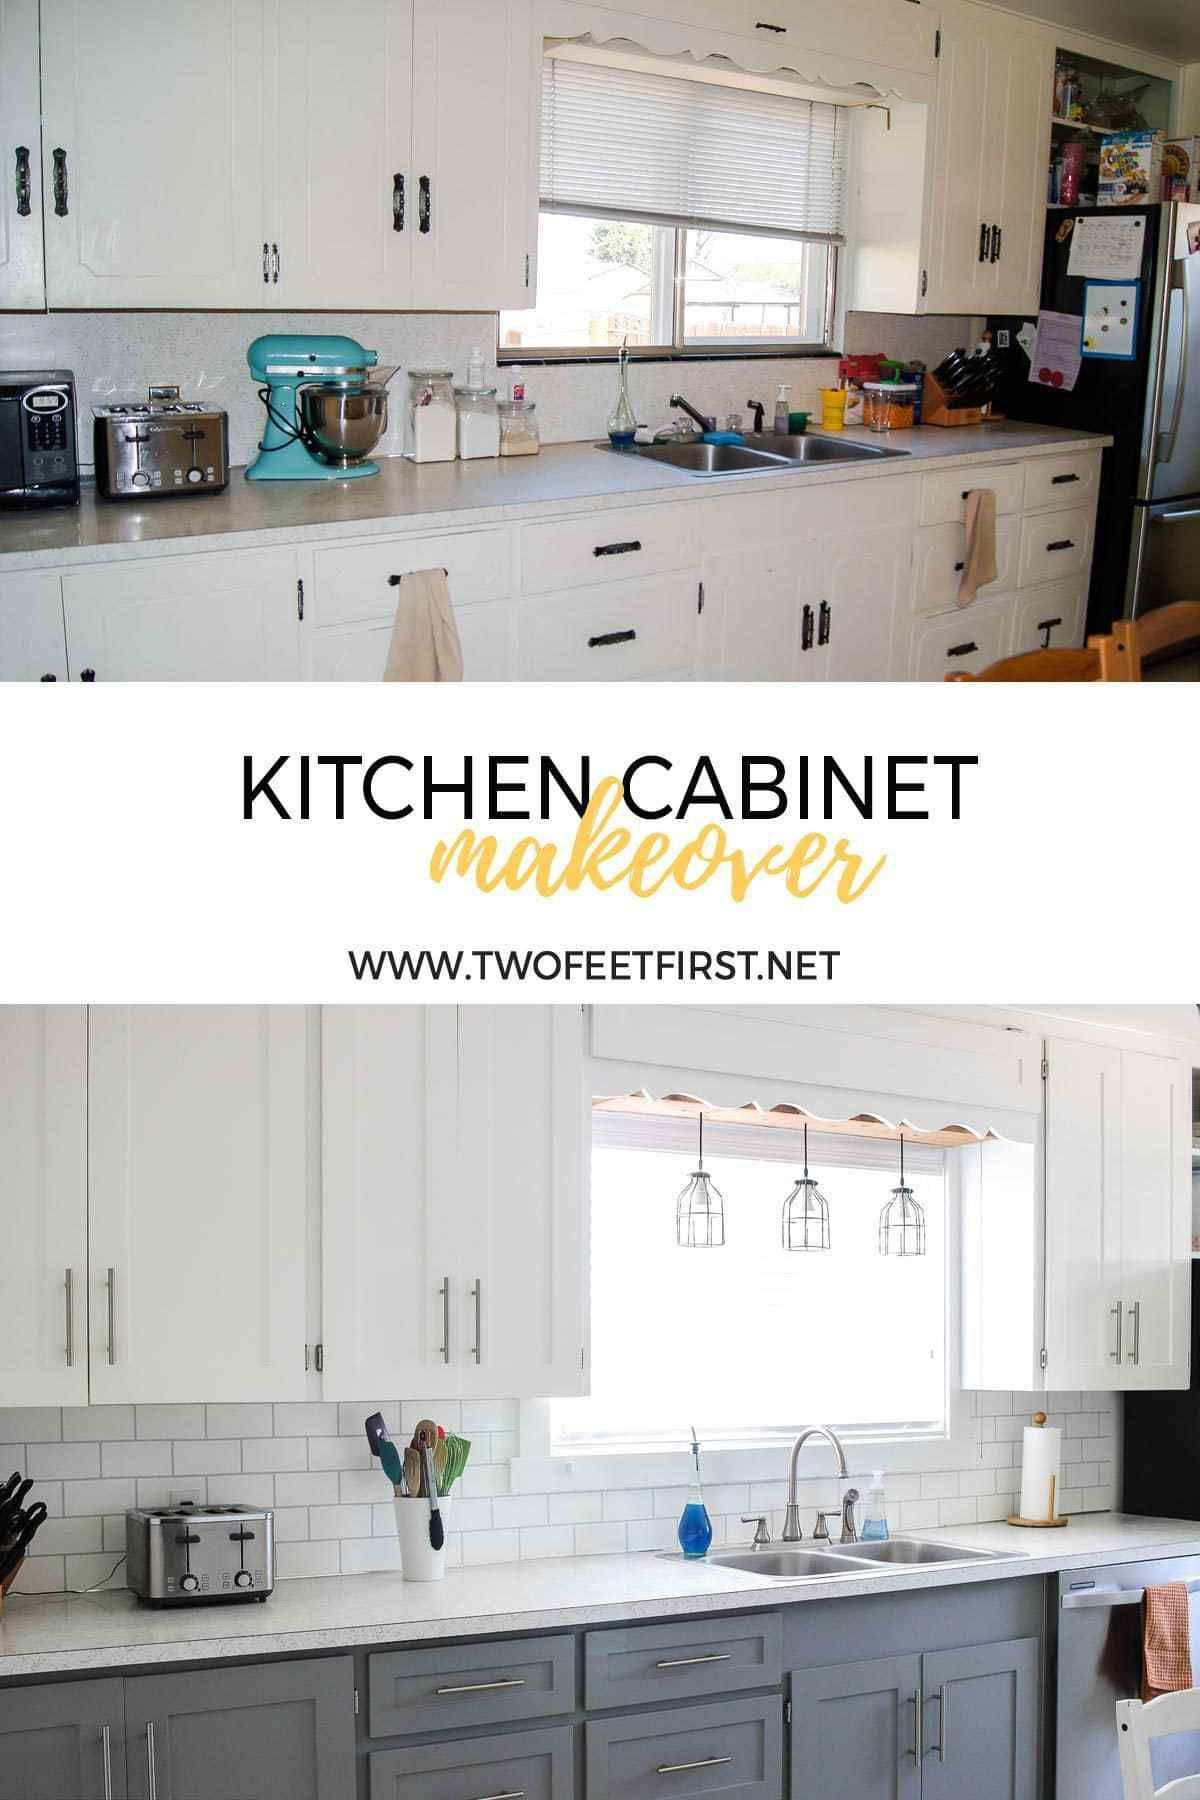 Want To Update Your Kitchen By Painting The Cabinets Here Are Tips On How To Paint Kitchen Cabinets With A Spray Painter Kitche New Kitchen Cabinets Refacing Kitchen Cabinets Diy Kitchen